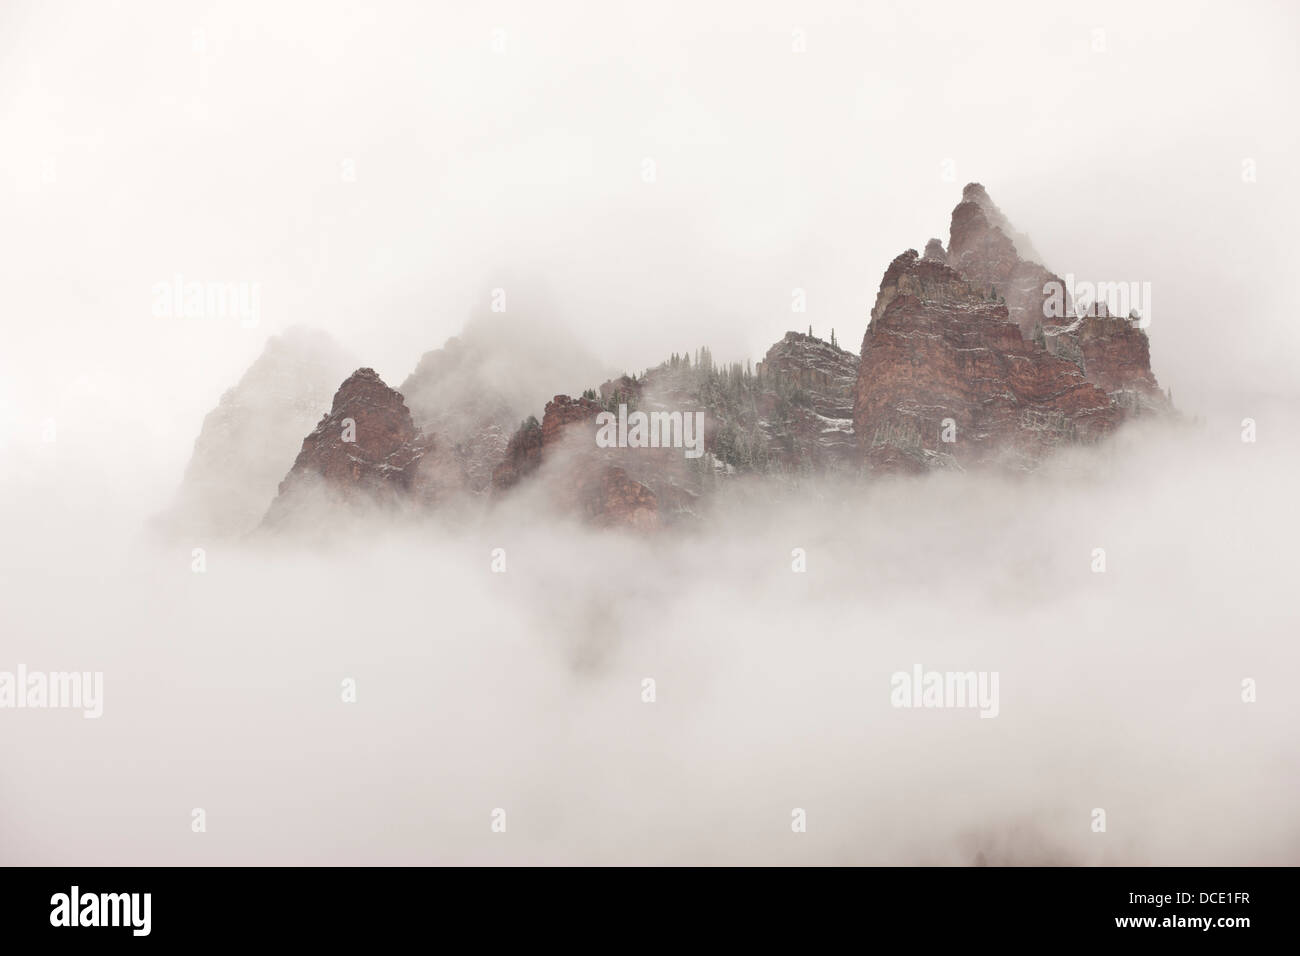 USA, Colorado, Aspen. Sievers Mountain with clouds swirling among its spires. - Stock Image